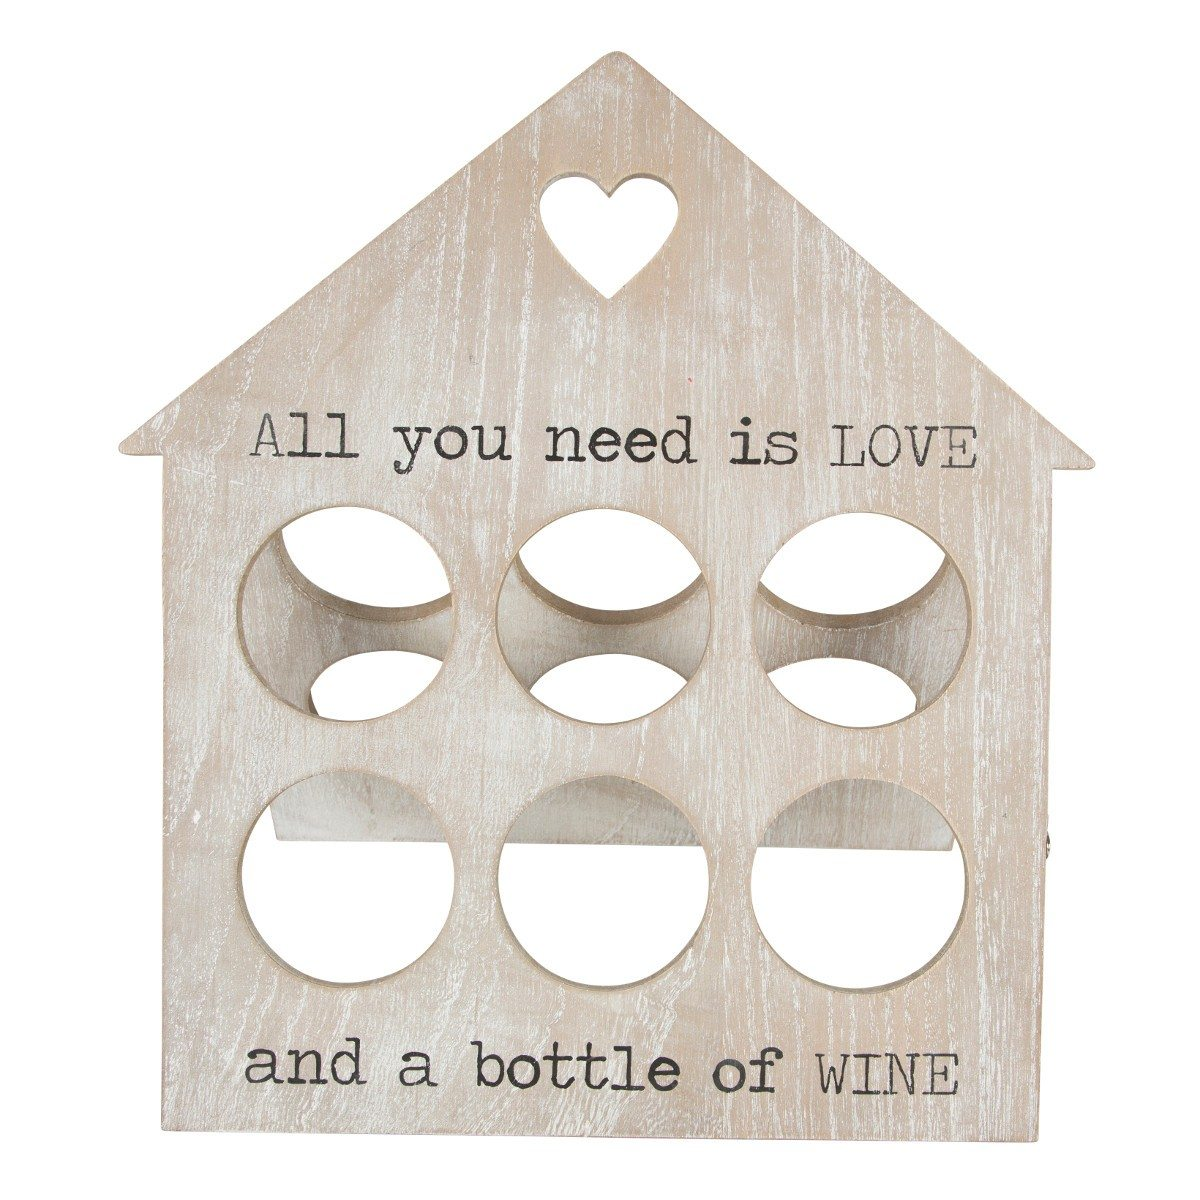 Support de bouteilles - All you need is LOVE